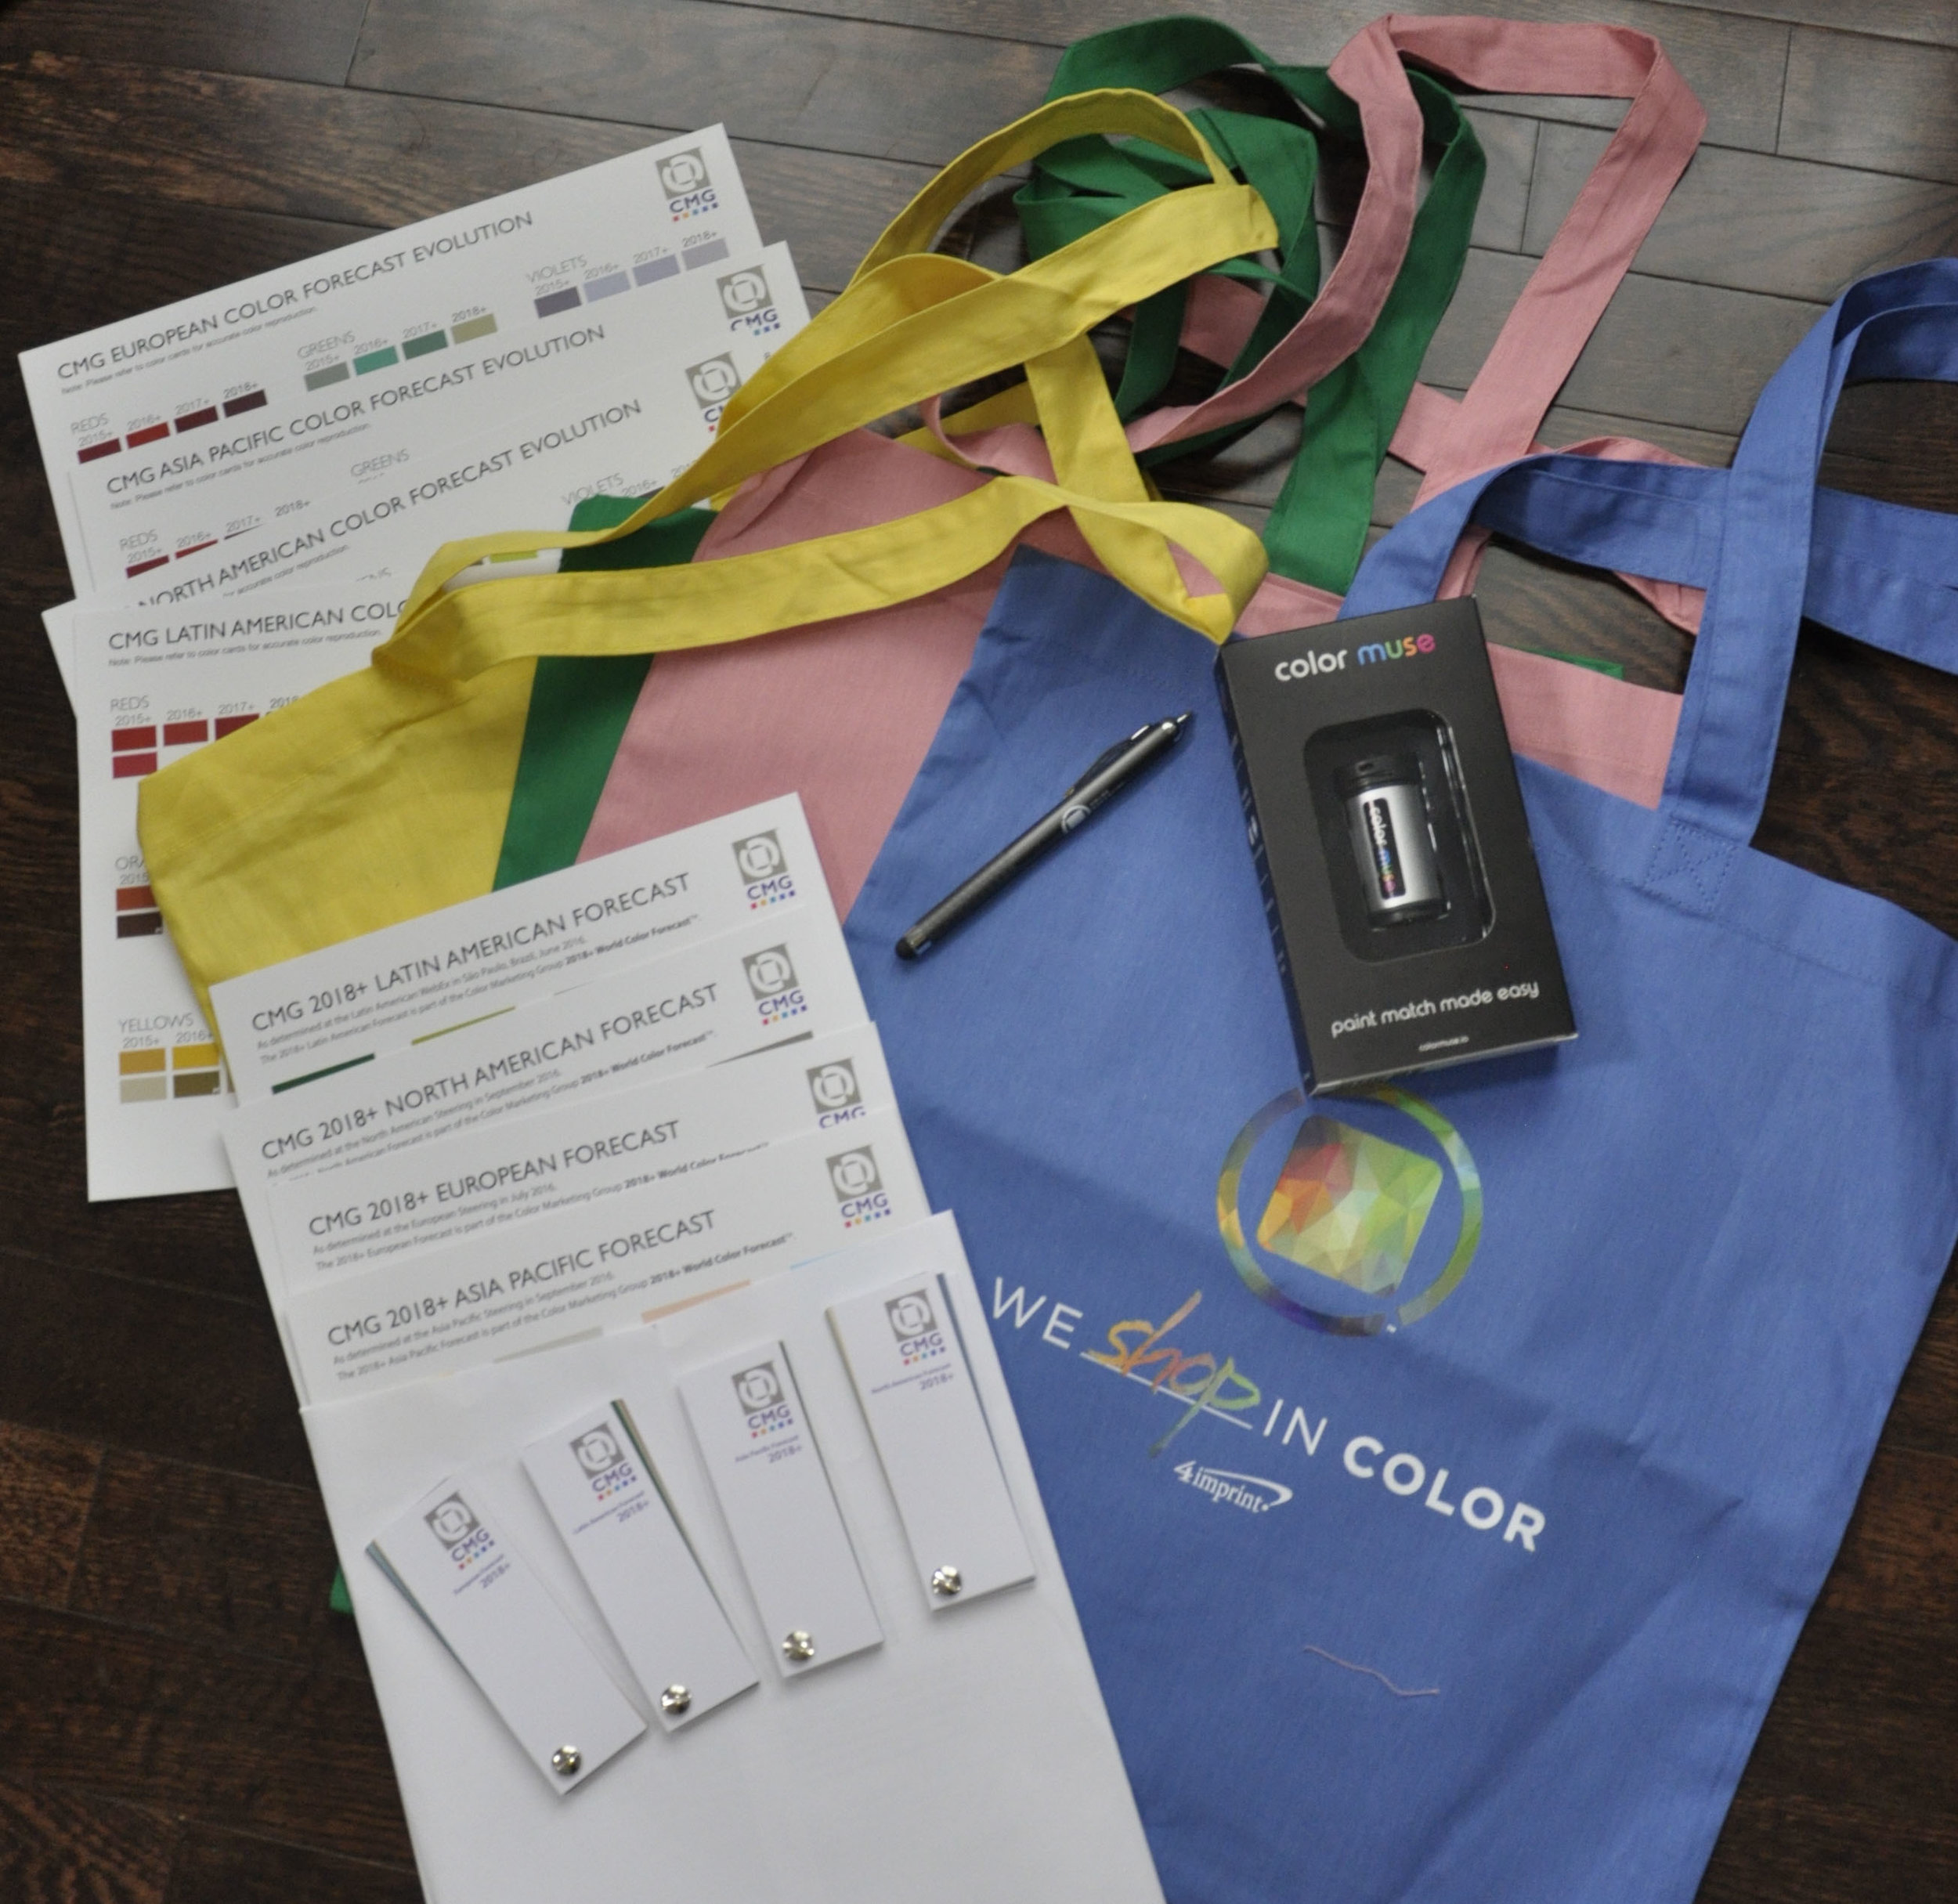 Check out all the stuff the CMG 2016 International Summit attendees received this year!